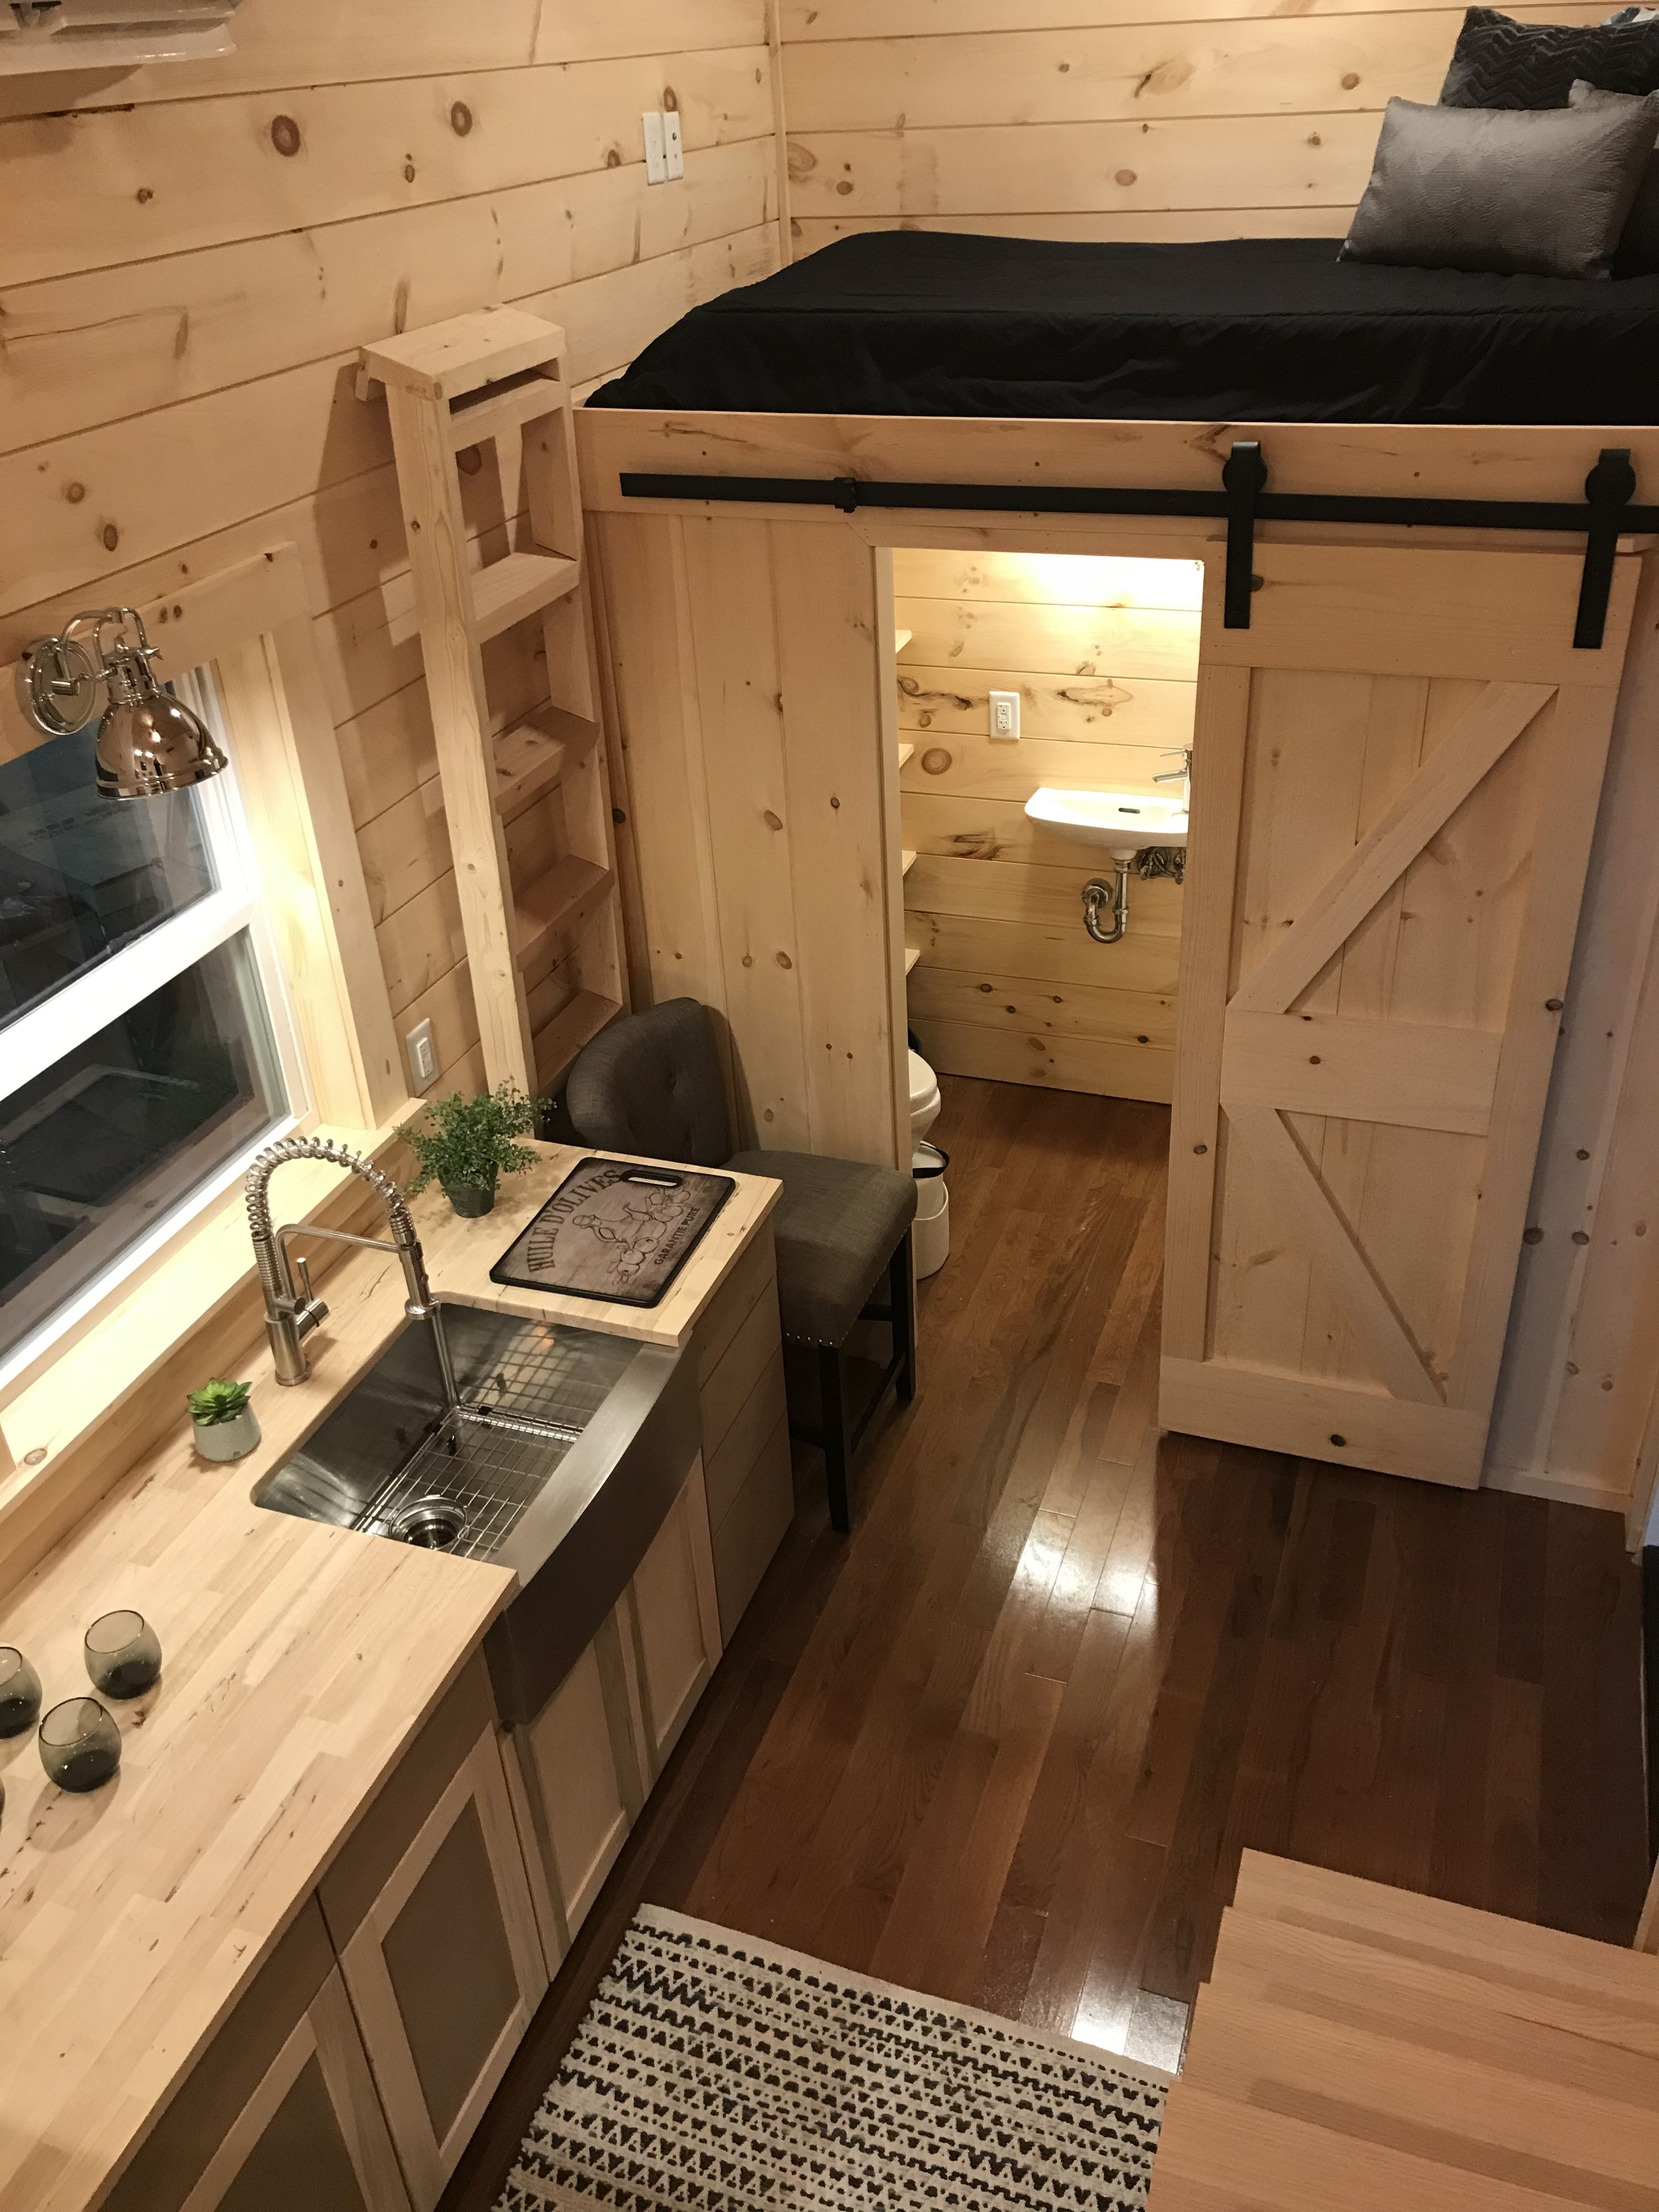 Sweet Dream is an 8′ x 22′ Incredible Tiny Home with a base price of $36,250 plus the customer's chosen upgrades.  This home has an approximate weight of 10,560 pounds.  Sweet Dream features a reverse loft, stairs with storage, and 3 closets.  This custom-built home also has a butcher block counter top, 3/4″ Kentucky Oak hardwood floors in Winchester, Shiplap, under the bed storage, half-moon sink, and many other custom features. #countertop